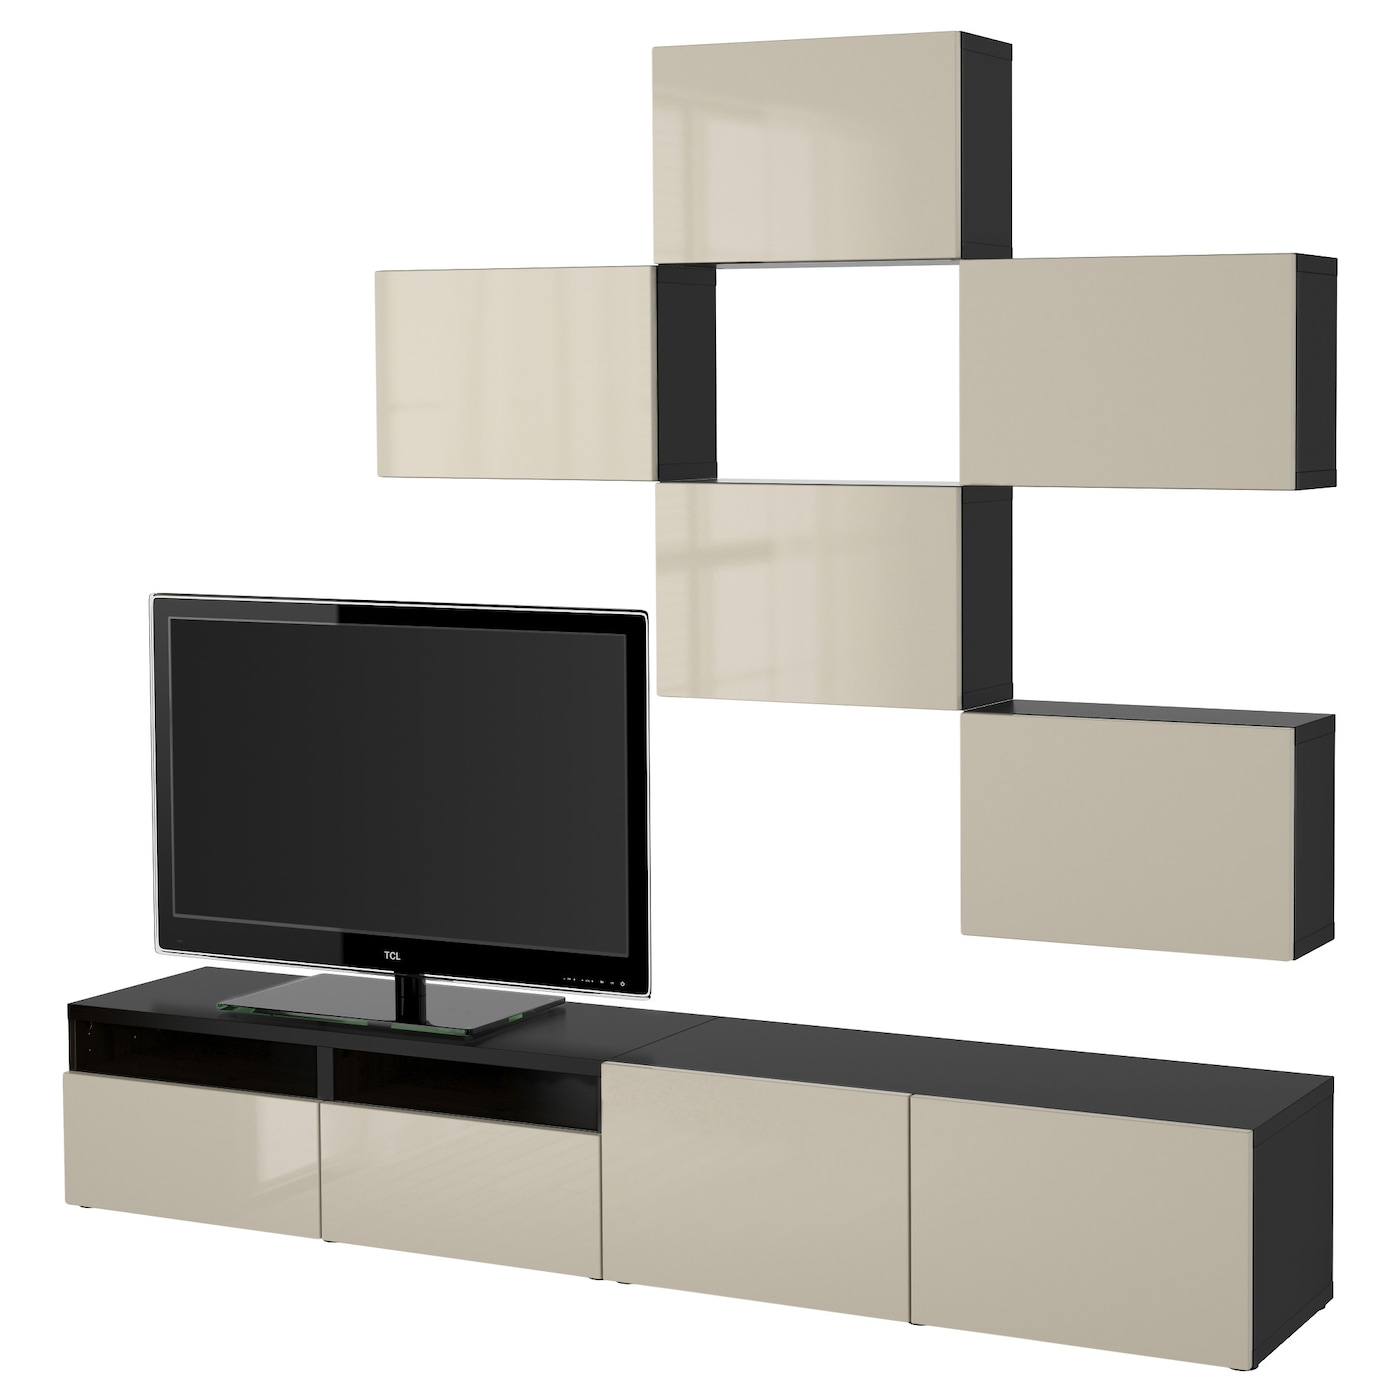 Tv Meuble Ikea - Best Tv Storage Combination Black Brown Selsviken High Gloss [mjhdah]http://www.ikea.com/ie/en/images/products/best%C3%A5-tv-bench-with-drawers-and-door-black-brown-lappviken-light-grey-clear-glass__0494157_pe626828_s5.jpg